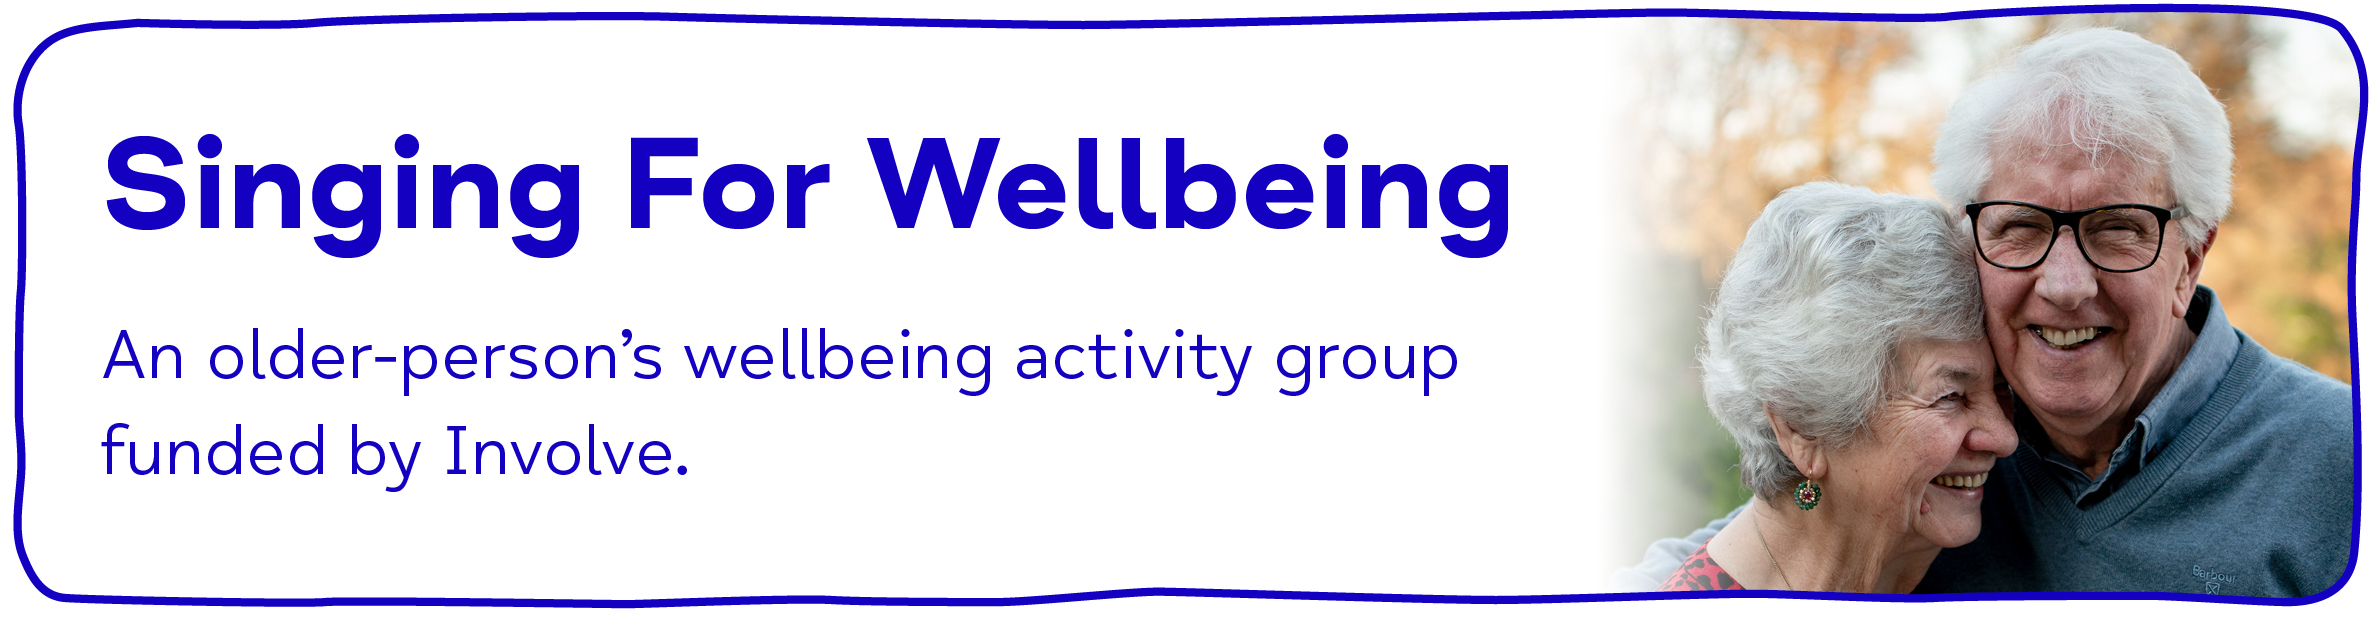 Singing For Wellbeing. An older person's wellbeing activity group funded by Involve.